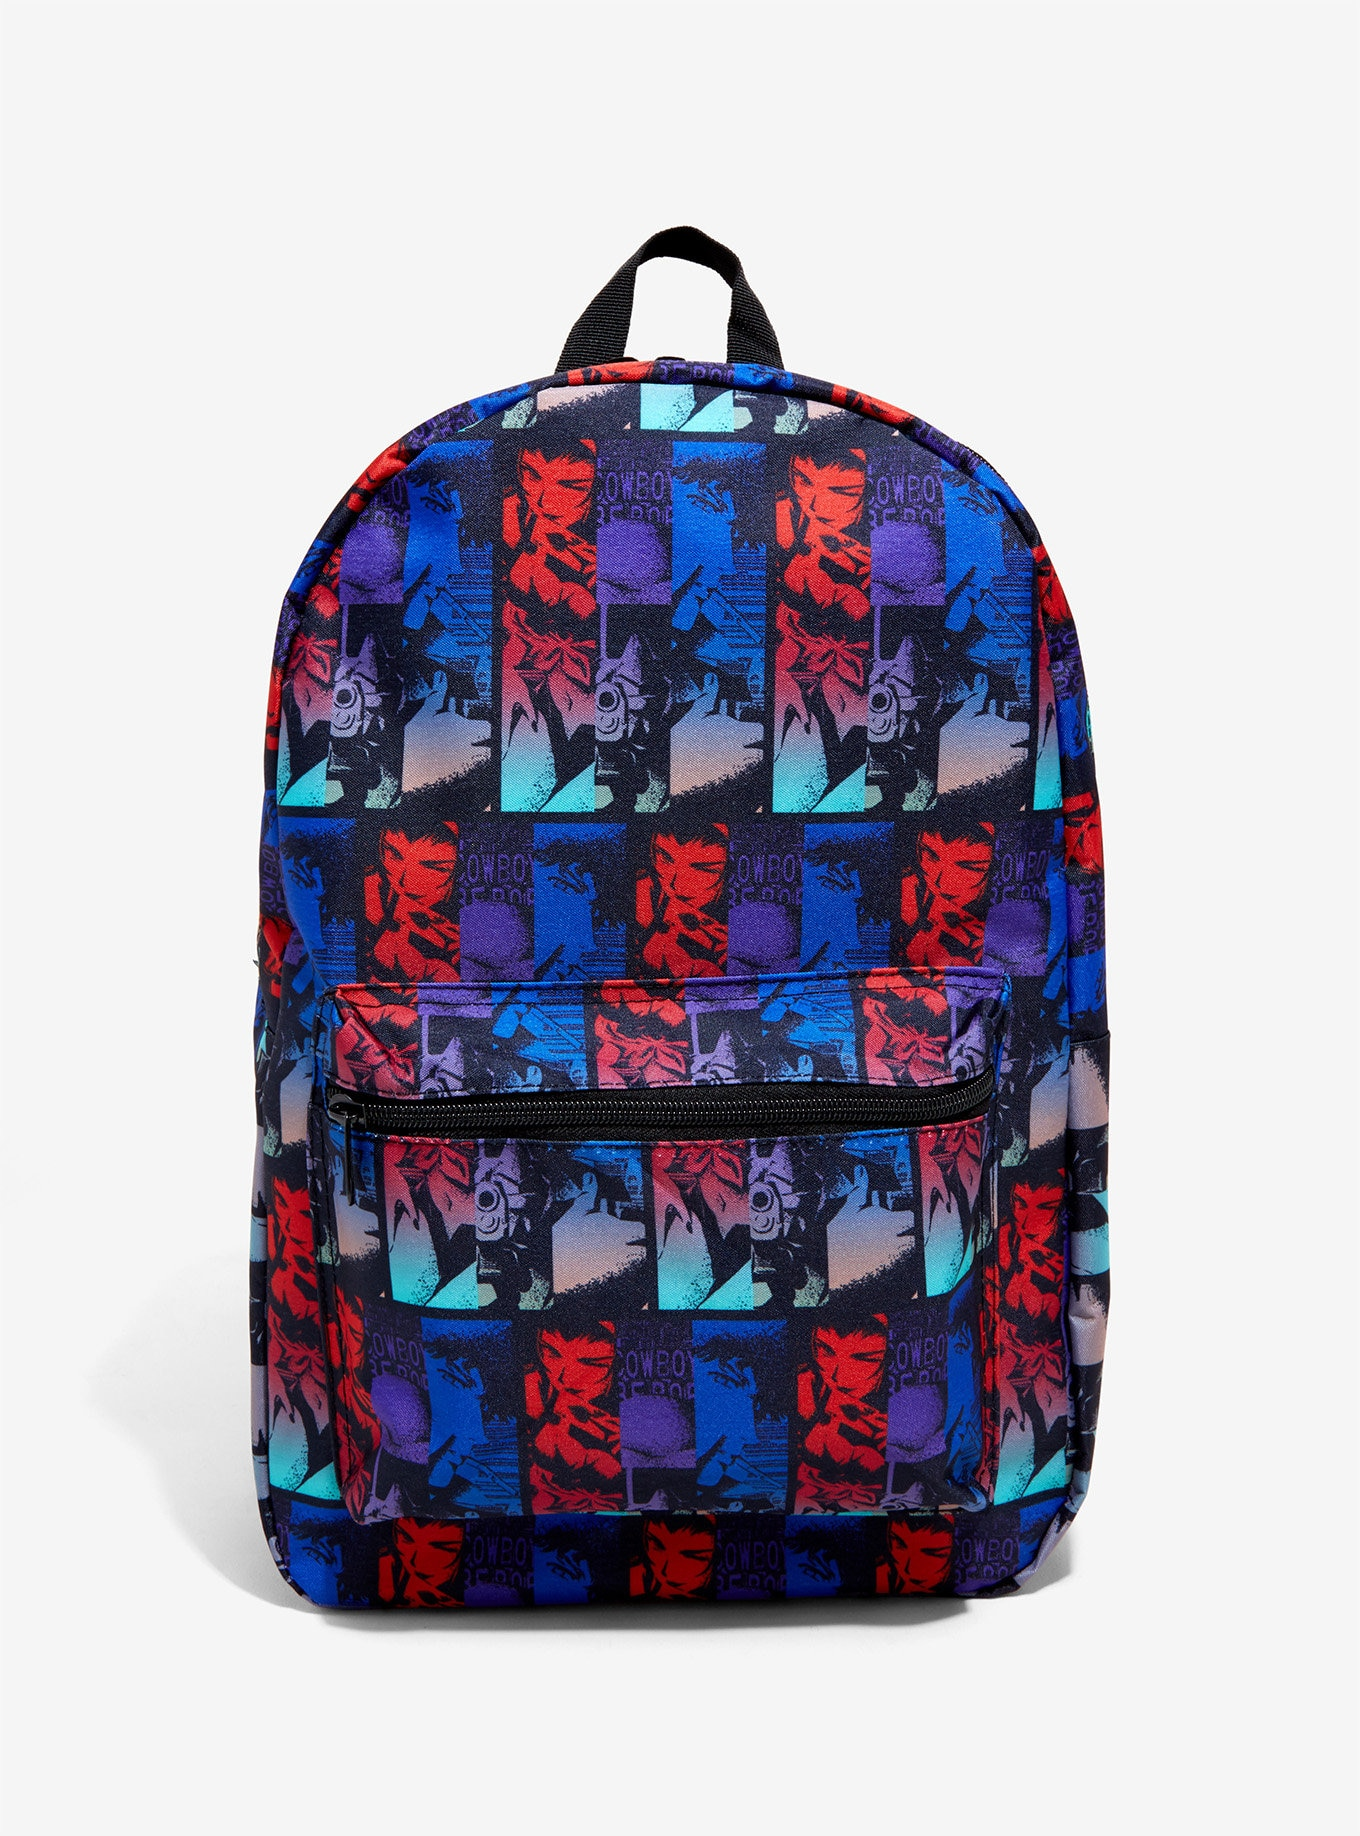 Cowboy Bepop Backpack Book Bag Faye Valentine Spike Spiegel